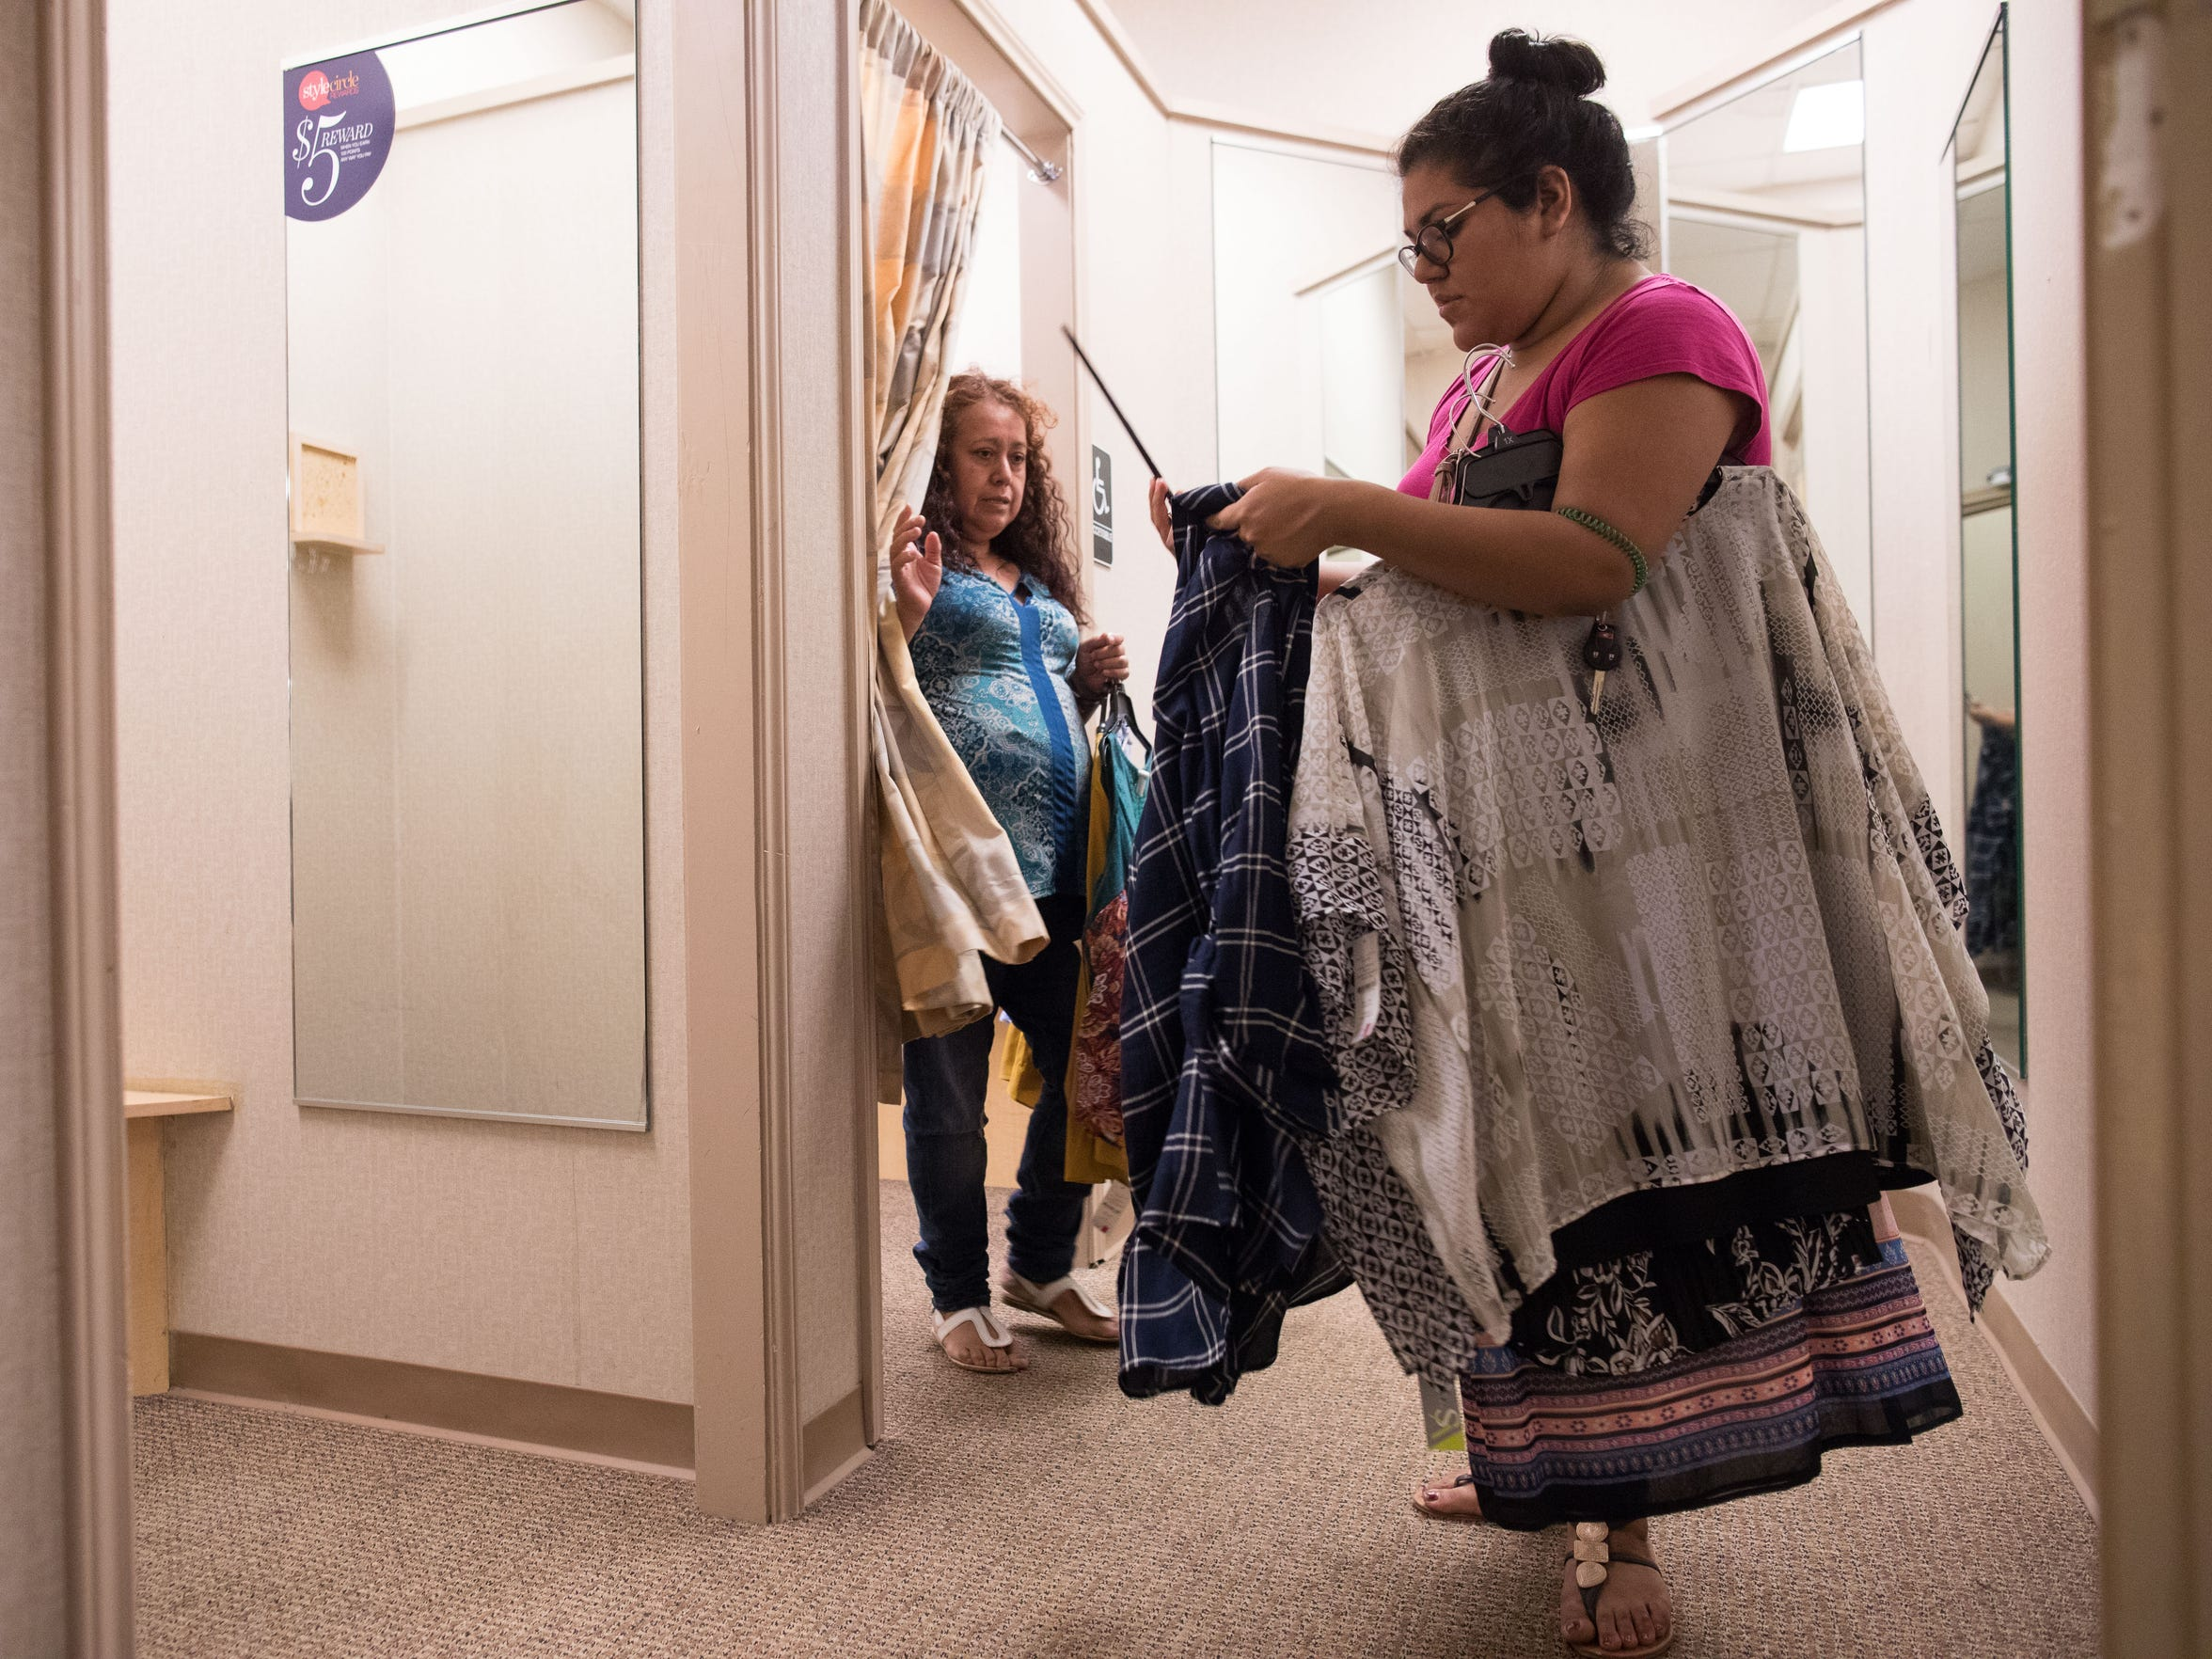 Maria Hernandez helps her mother Carlota Palomo pick out a dress for her 50th birthday party on Saturday, Nov. 4, 2017.  Hernandez is a DACA recipient who was brought to the U.S from Mexico at the age of 4 by her grandmother to escape an abusive father.